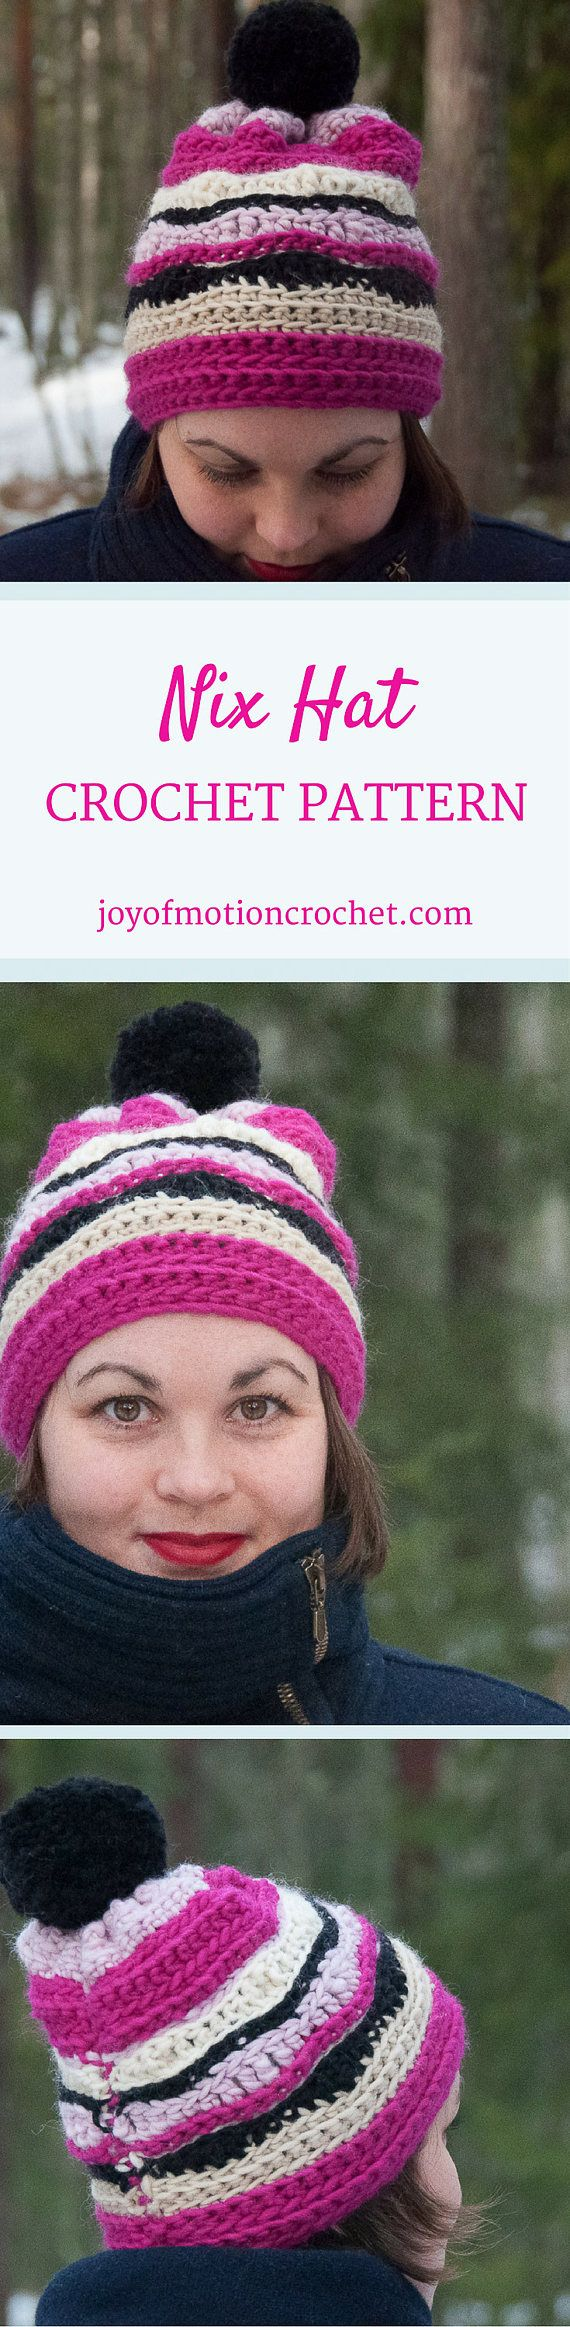 Nix Hat Crochet Pattern ★ Crochet pattern for the Nix Hat, a striped winter hat/beanie. ★ Easy to modify if you want to change the size. ★ Size: 12-18 months, 18-24 months, 2-5 years, Child, Teen, Adult Woman, Adult Man ★ Skill level: EASY ★ Language: English / US crochet terms. Nix Hat Crochet Pattern The Nix hat crochet pattern is a pattern for a striped warm winter hat. This beanie pattern has a huge size range from 12 months to adult size. Put this to use & keep yourself ...